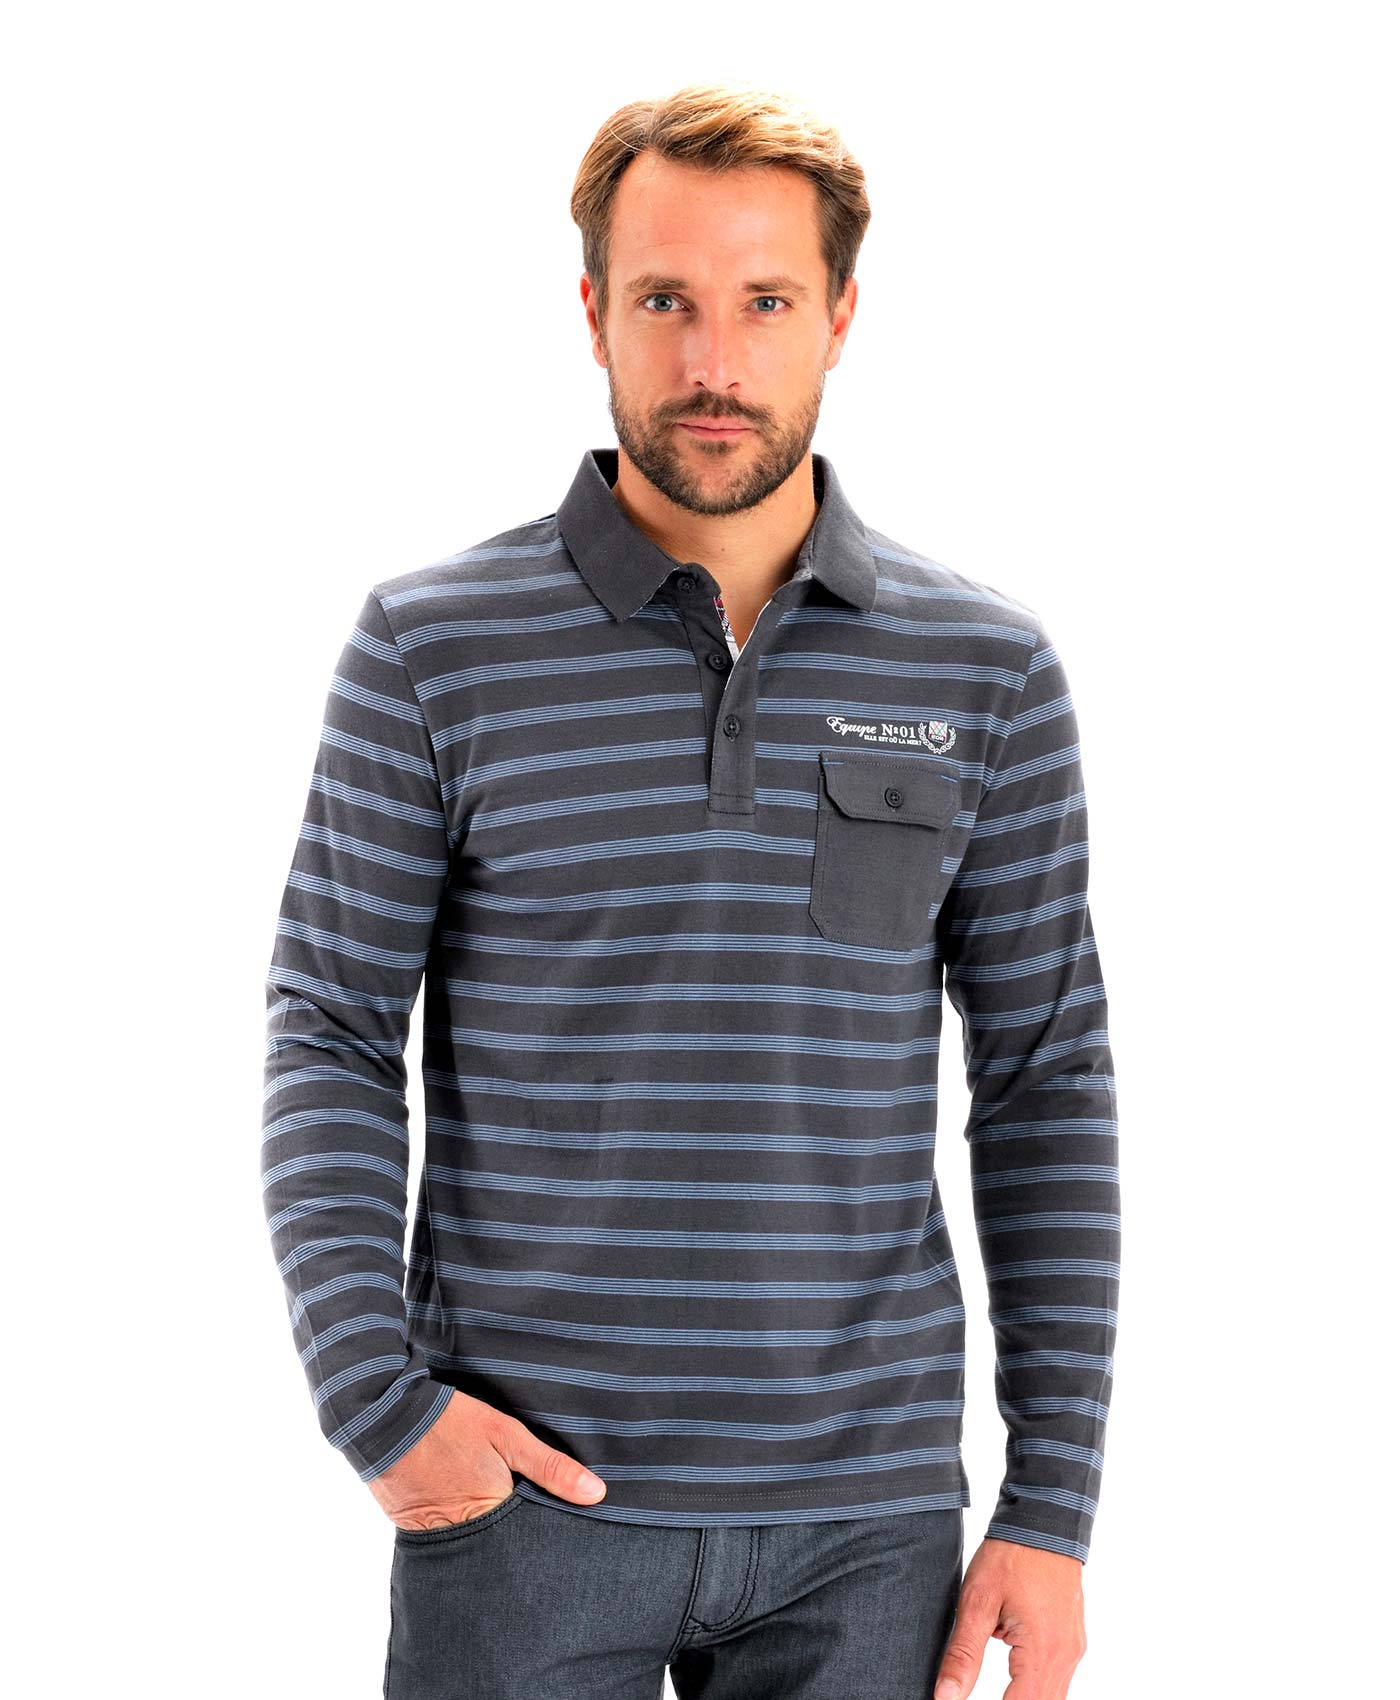 Polo manches longues homme rayé - Mode marine Homme